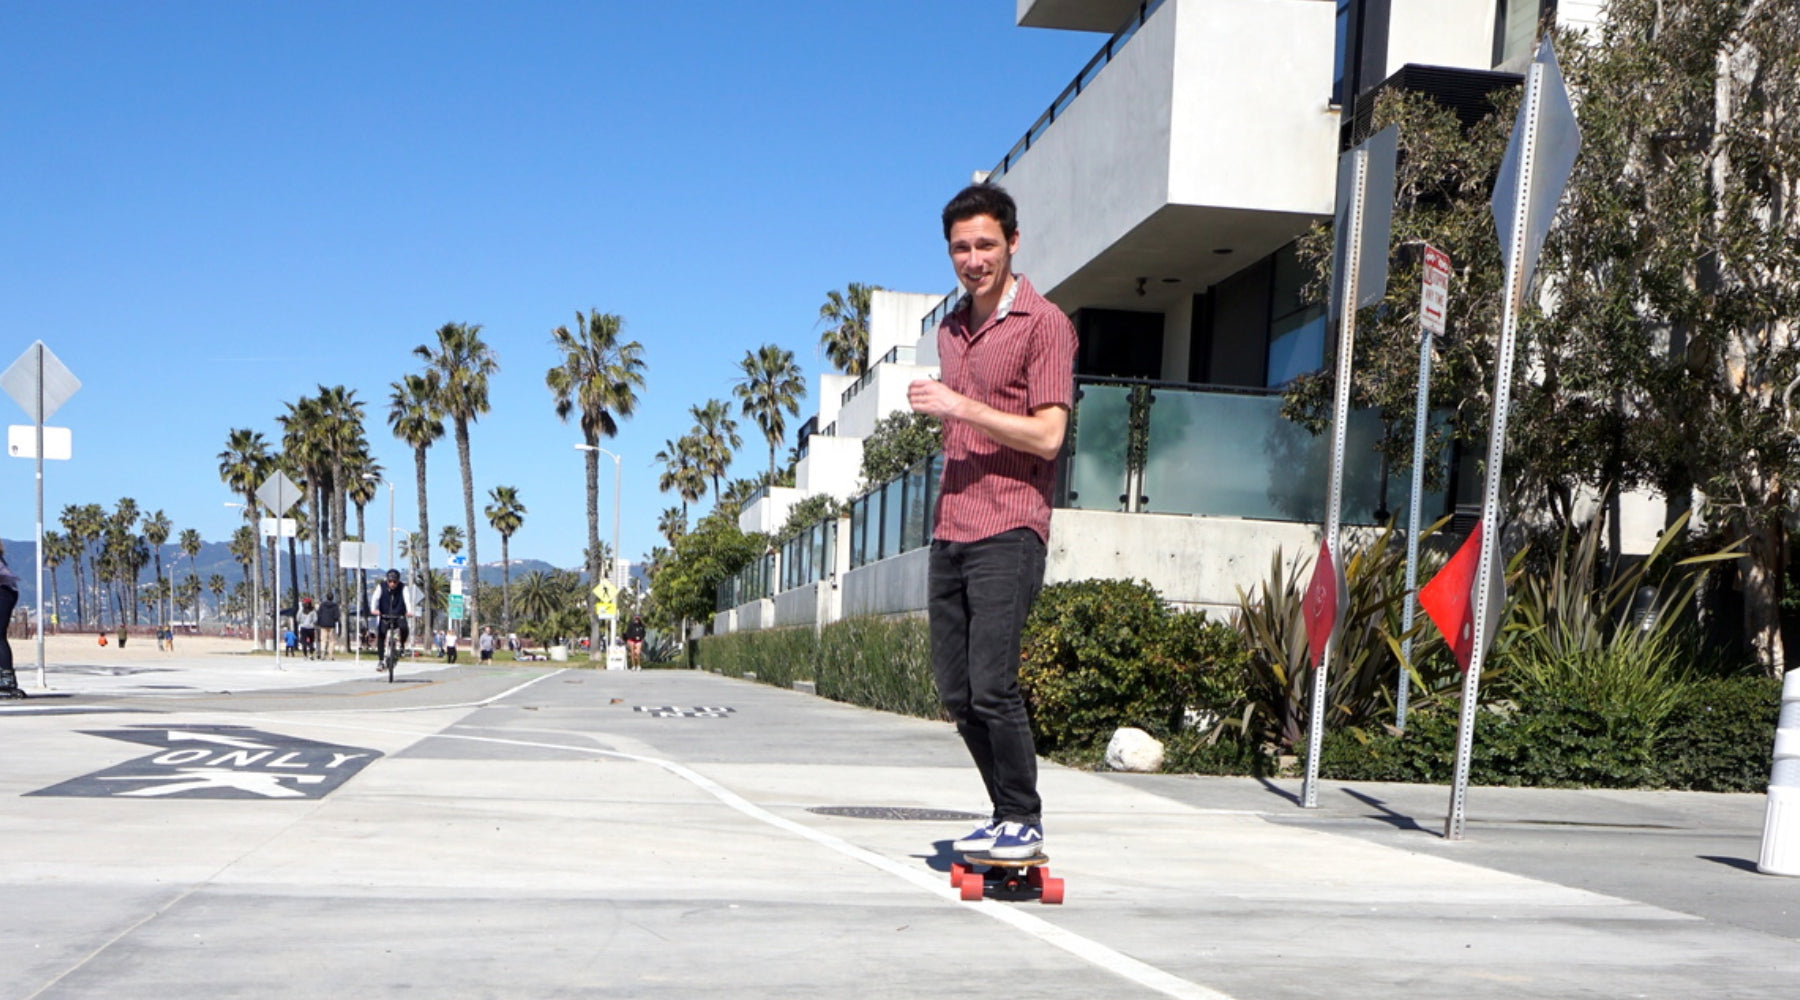 Guy Riding Eggboard in Venice Beach Boardwalk California